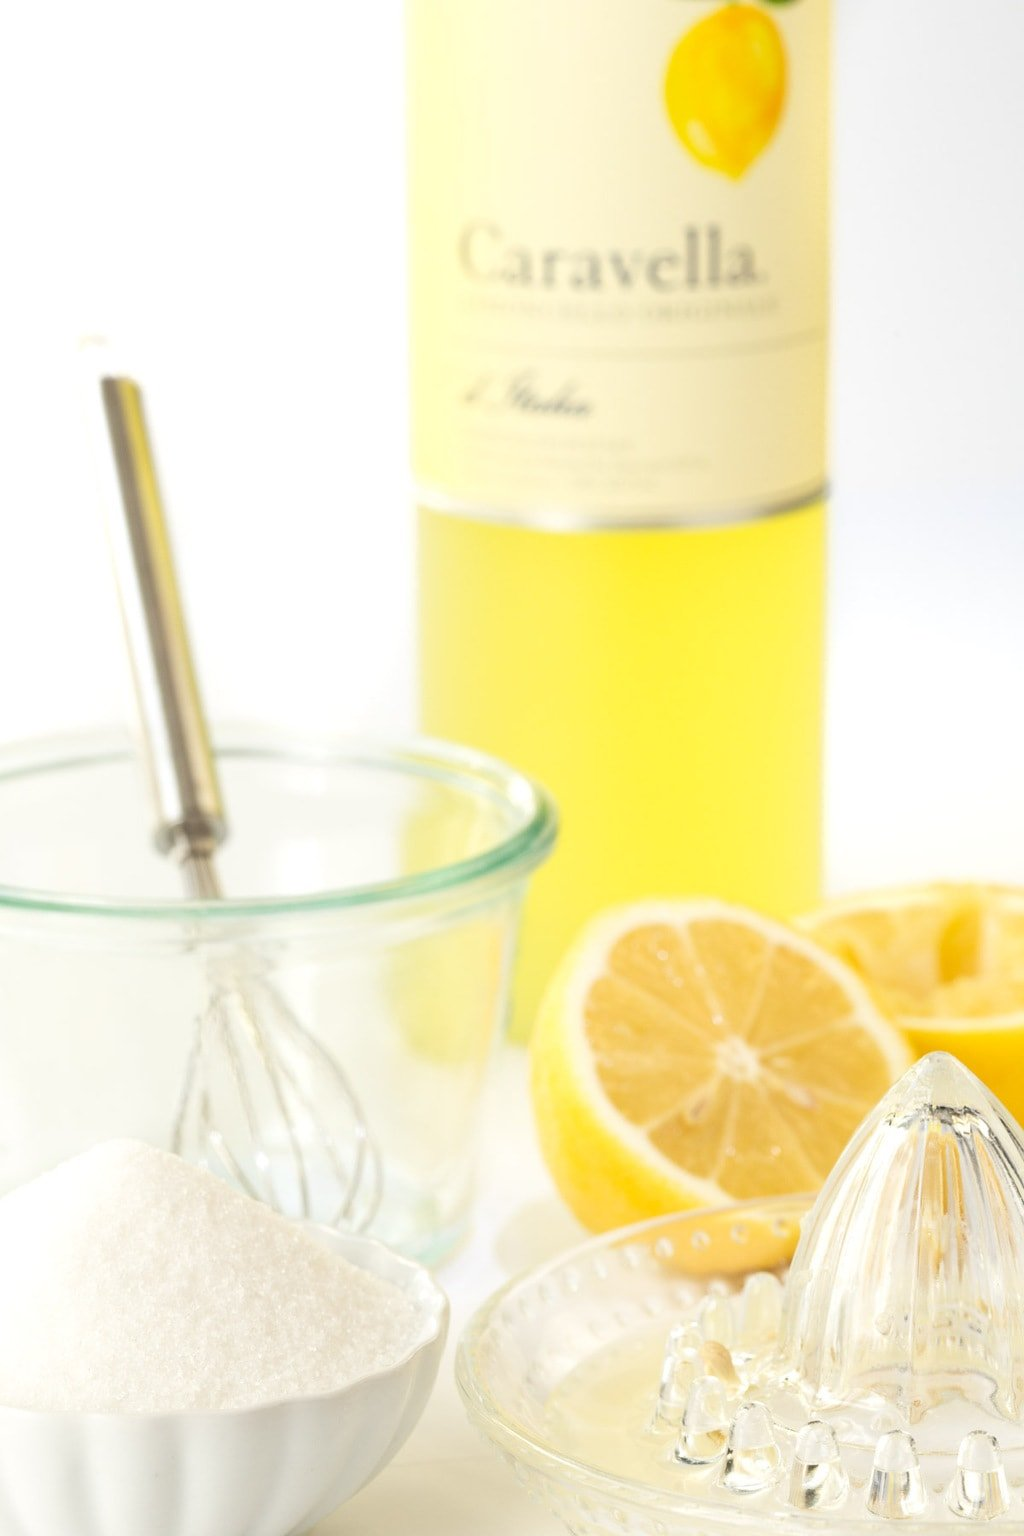 Photo of the ingredients and equipment for making Limoncello Syrup and Dessert Sauce with a bottle of Caravella lemon liquor in the background.